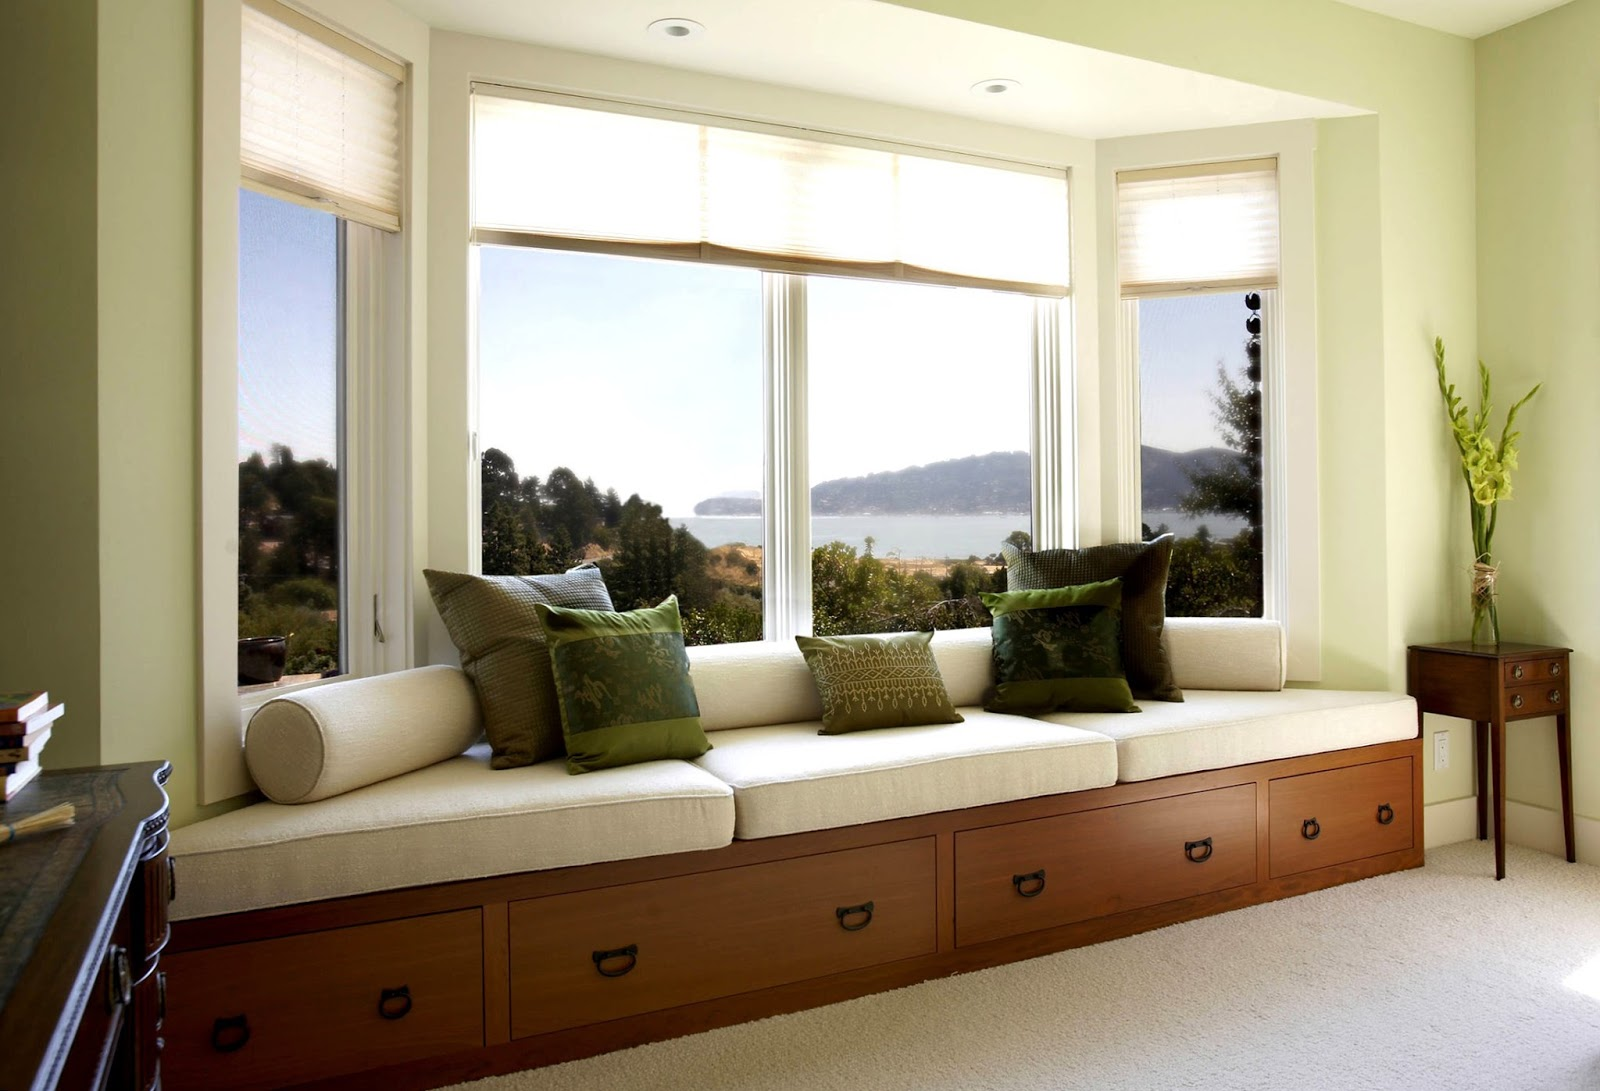 Wooden-window-seat-bench-with-olive-throw-pillows-